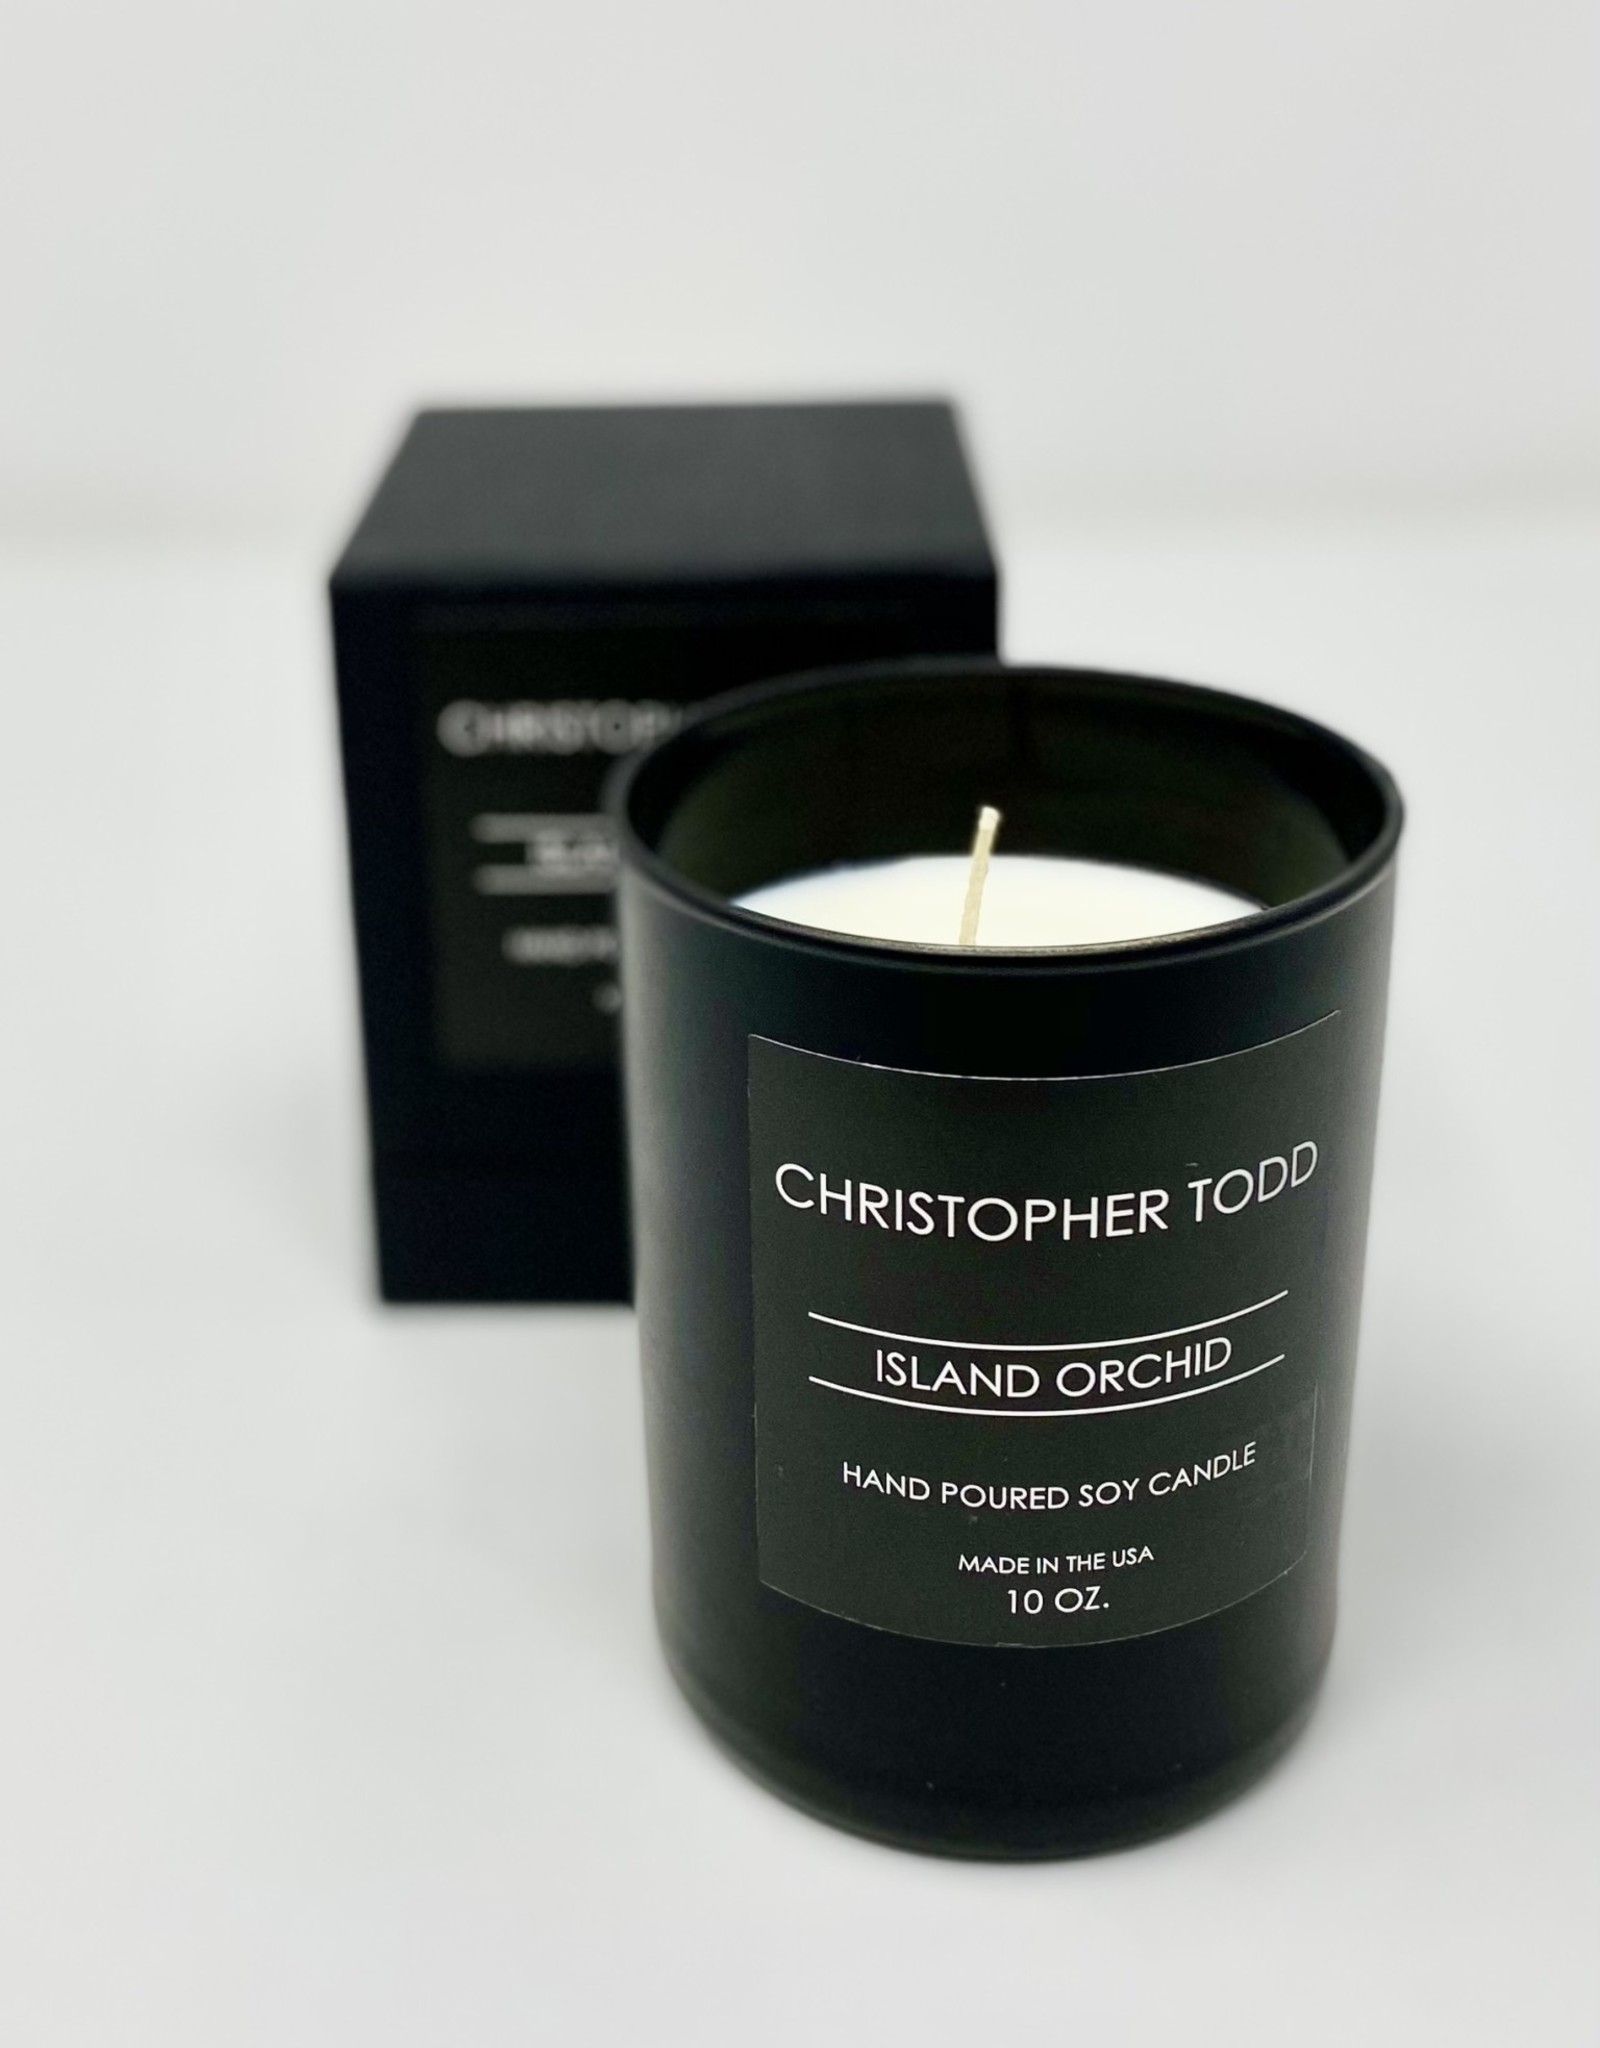 Greenmarket Purveying Co Island Orchid Christopher Todd Candle